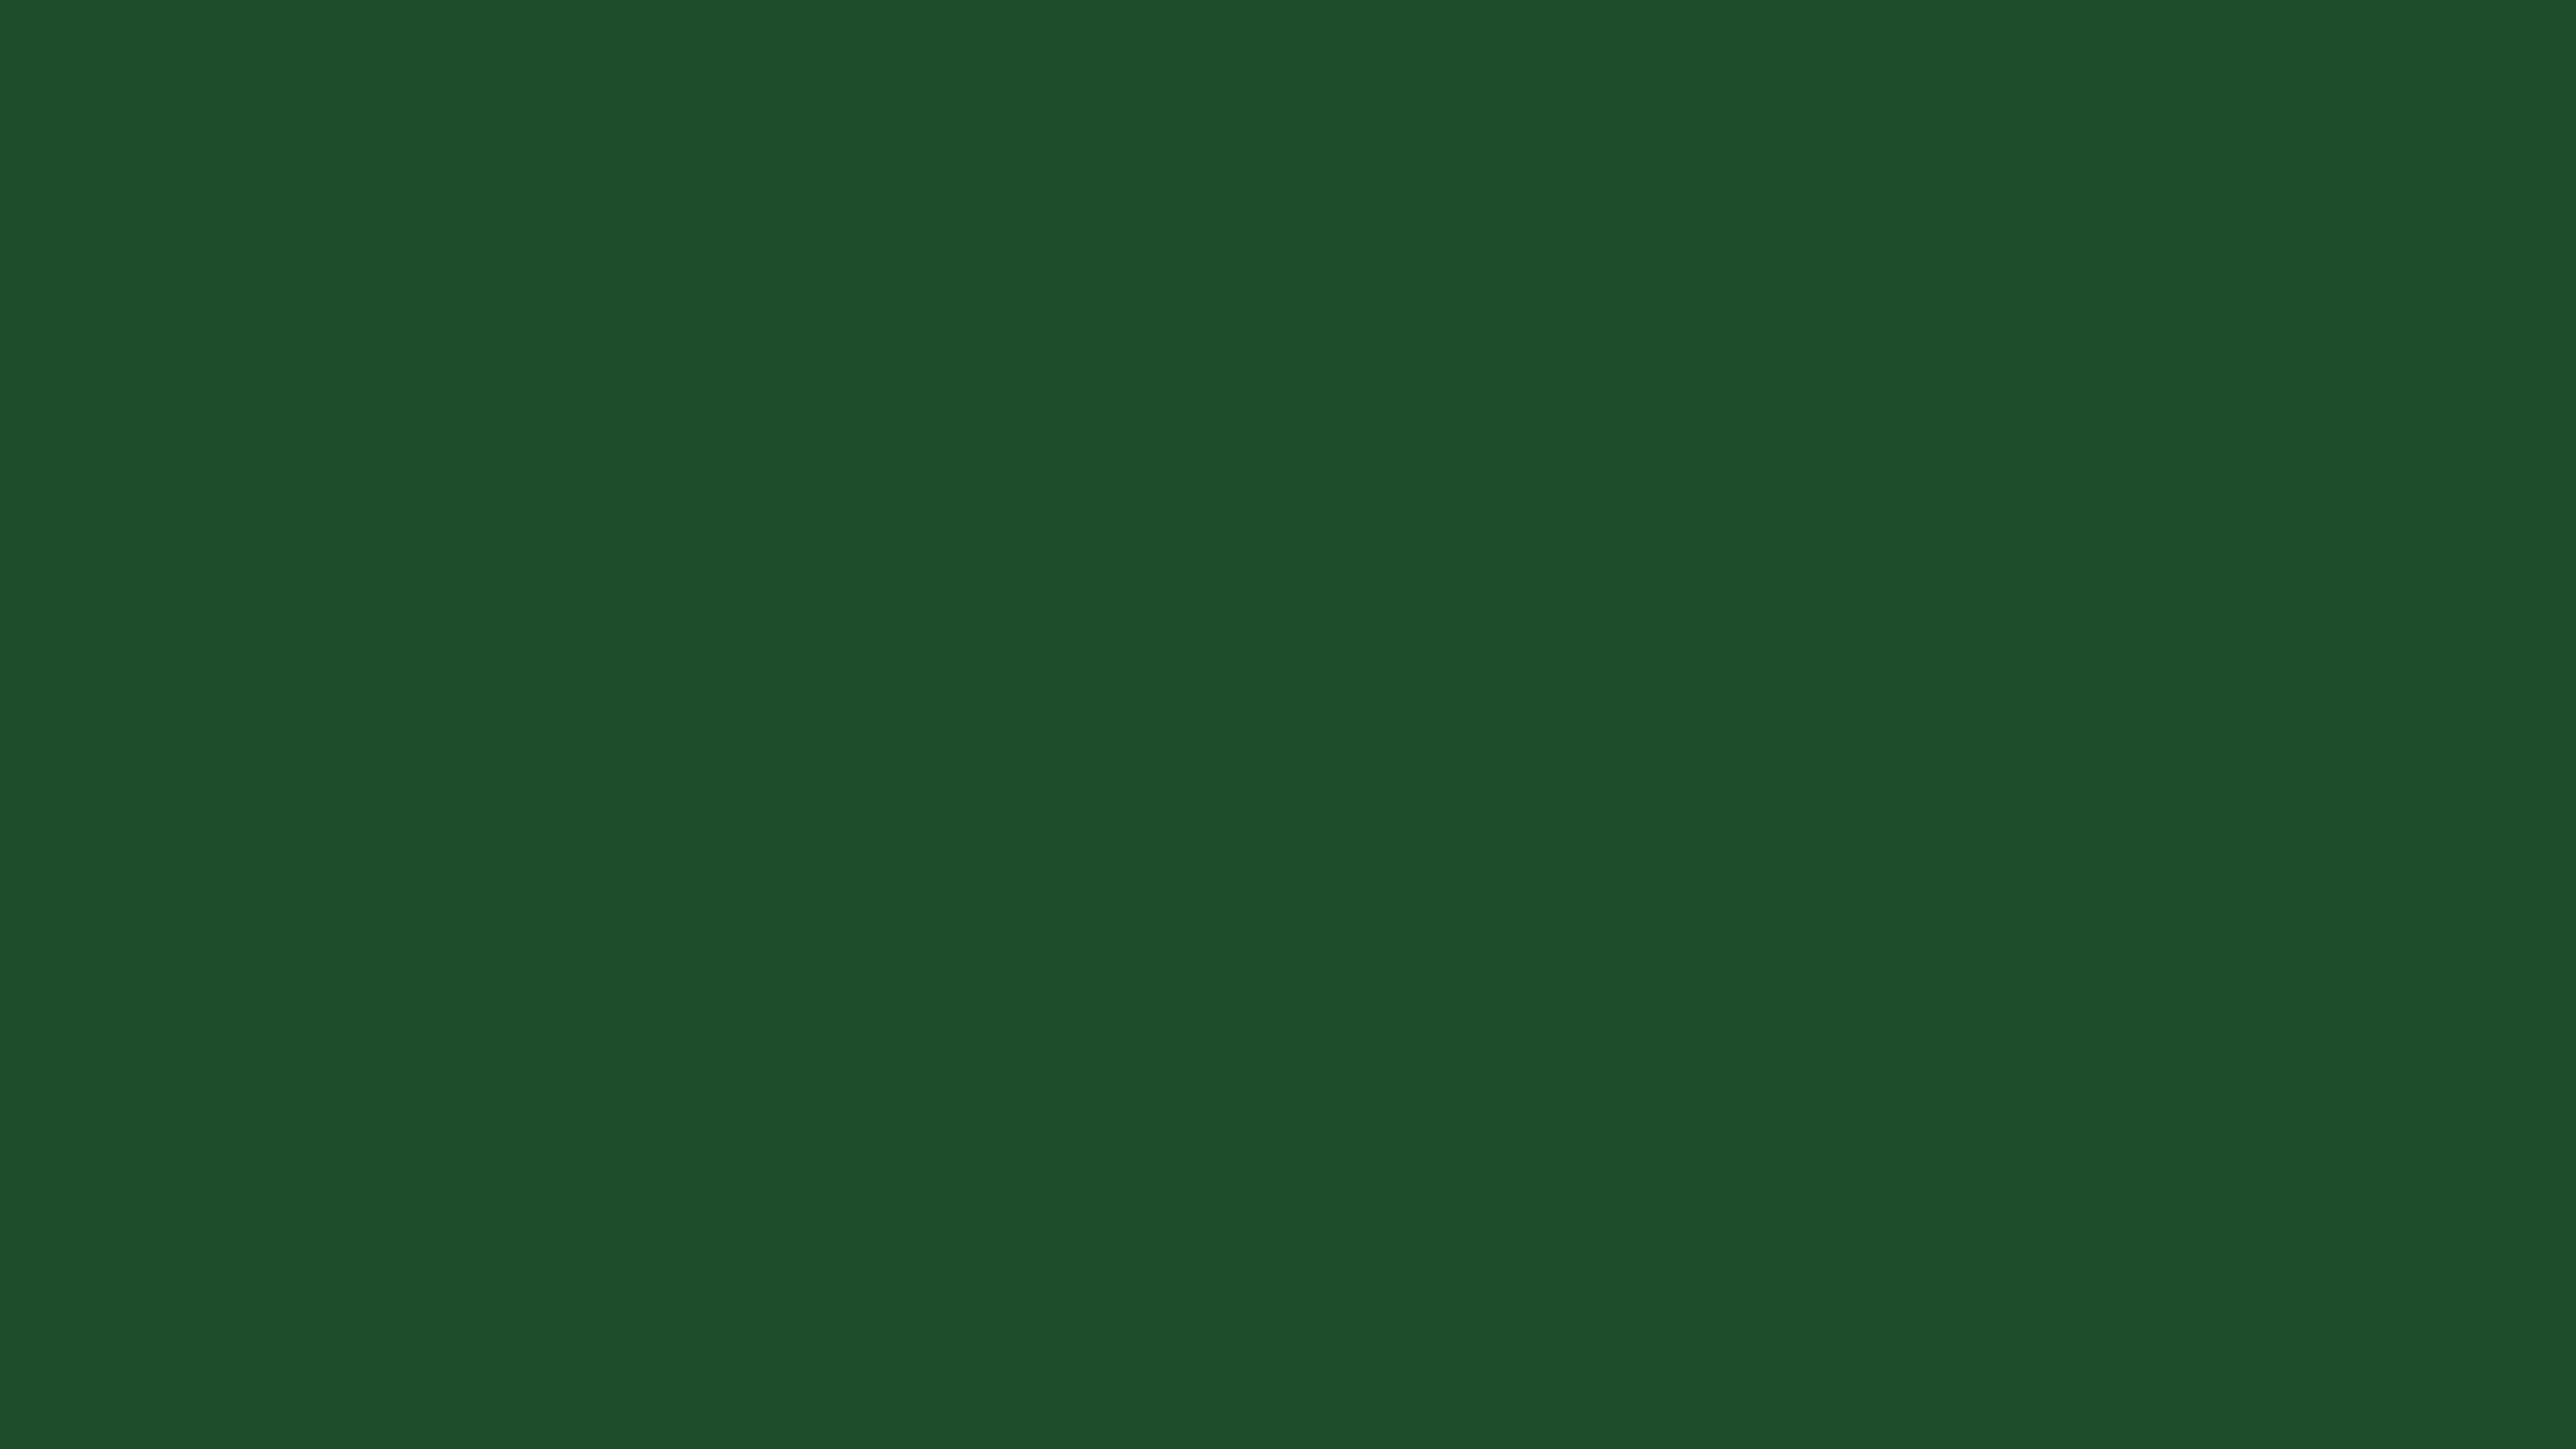 5120x2880 Cal Poly Green Solid Color Background 5120x2880